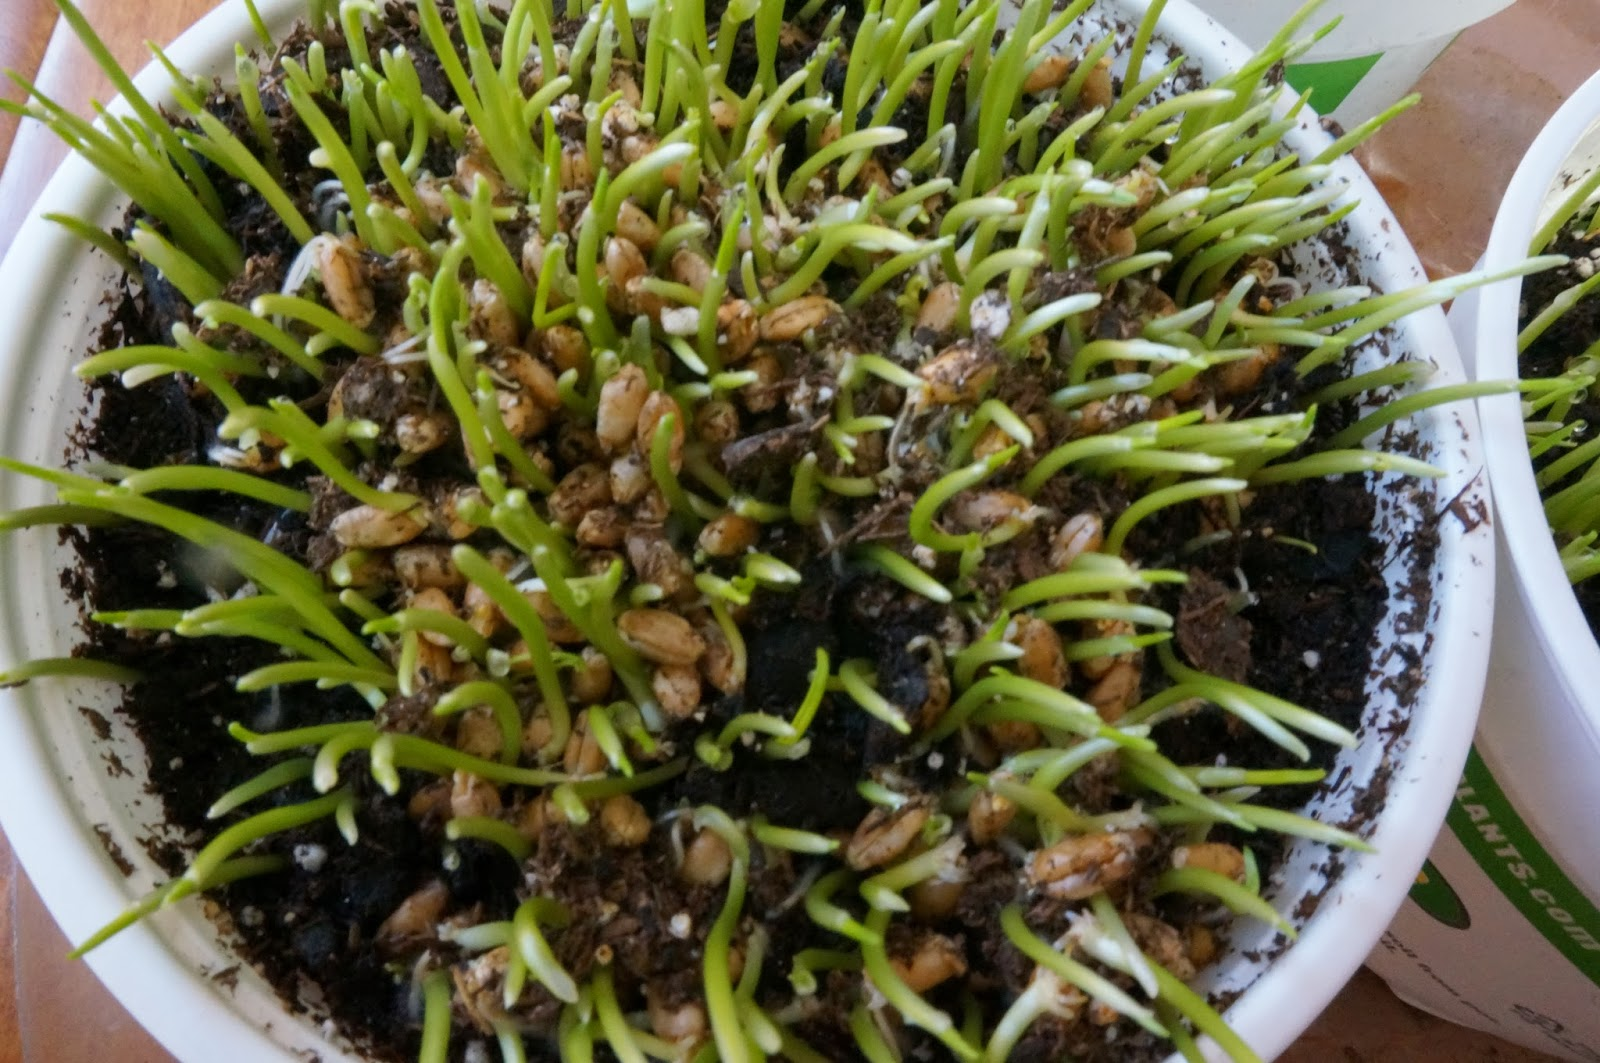 Close up of wheat grass in pot